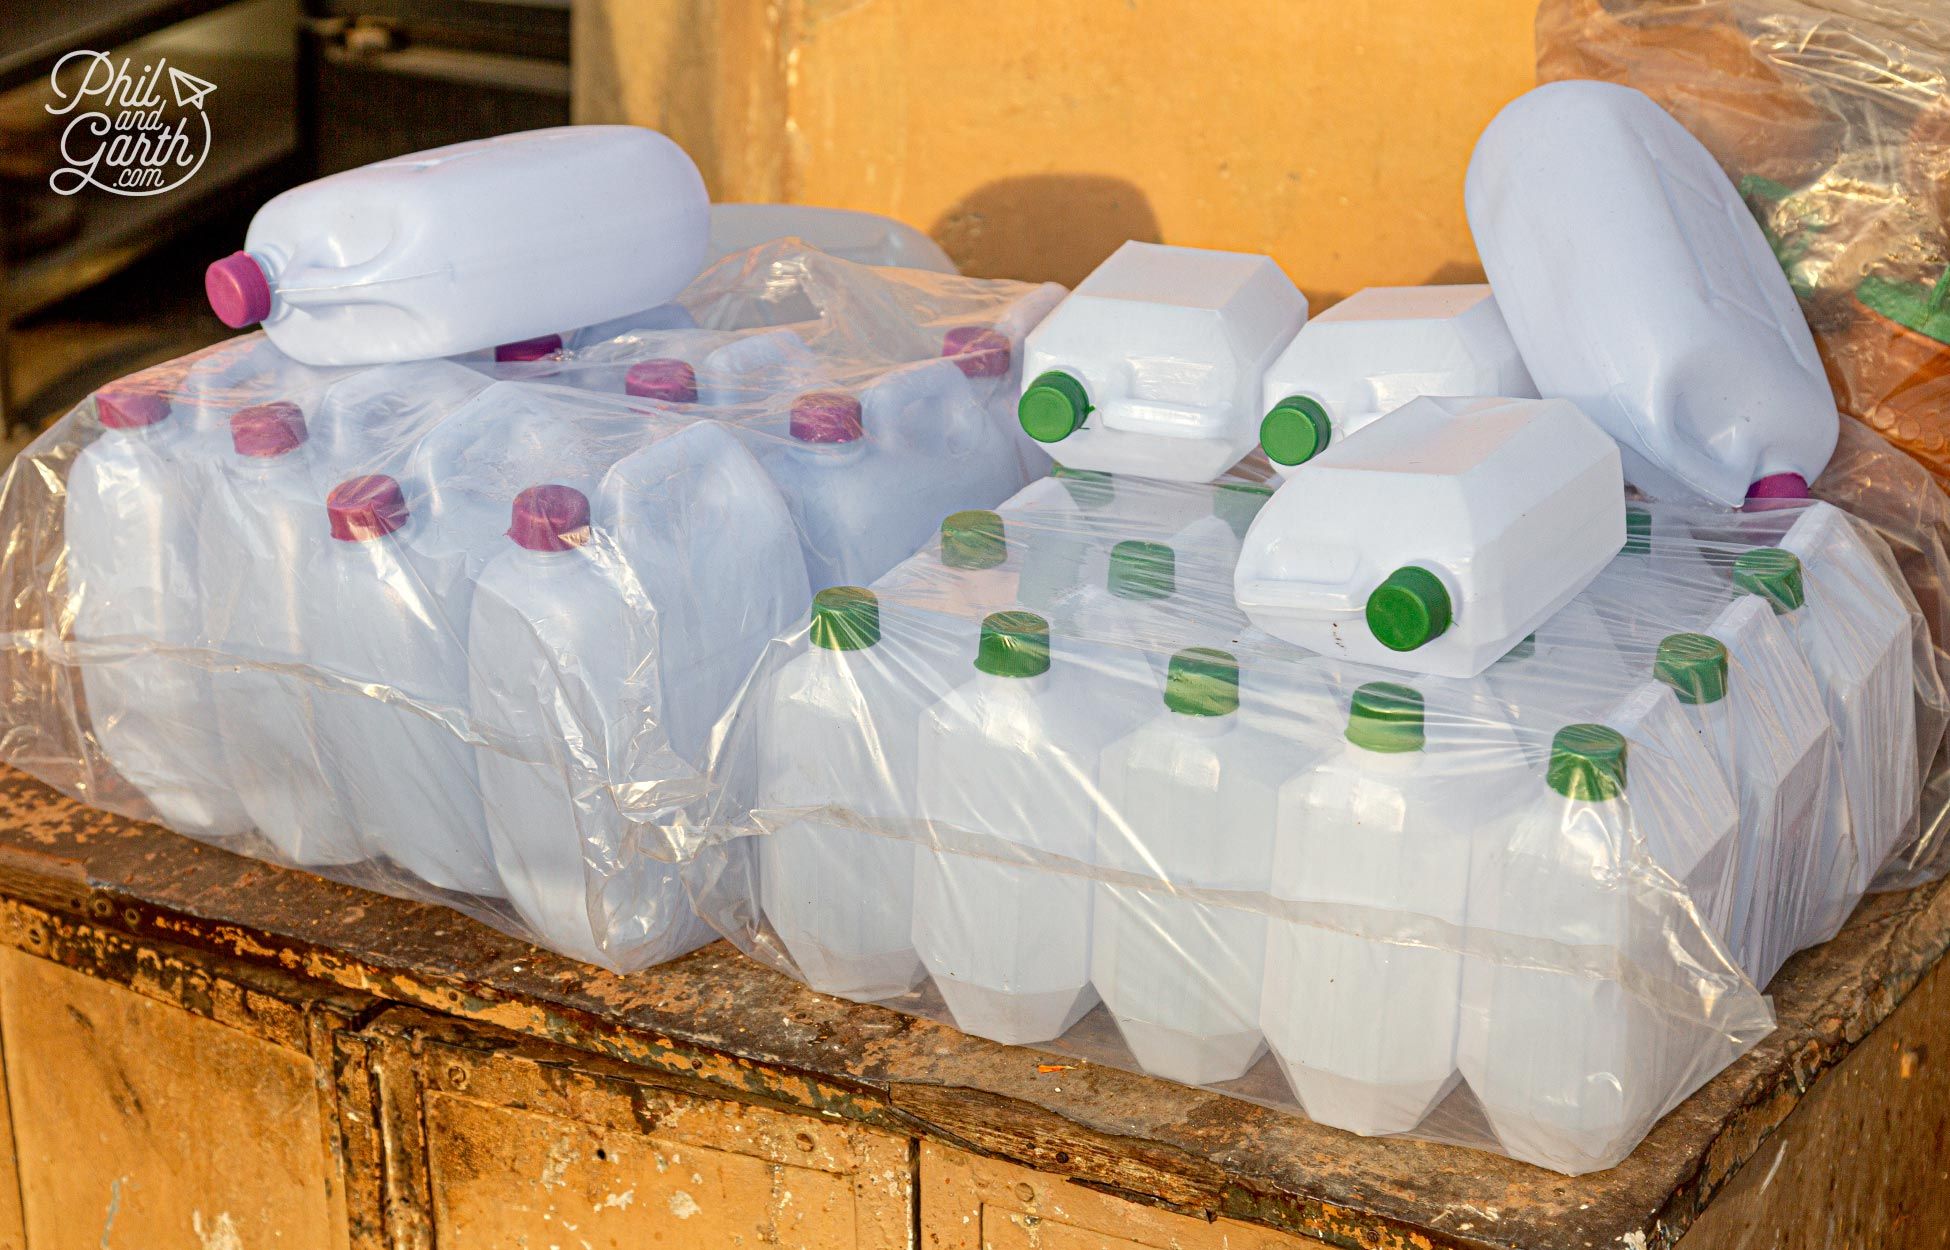 Plastic bottles for sale - so people can take home some holy water from the River Ganges.